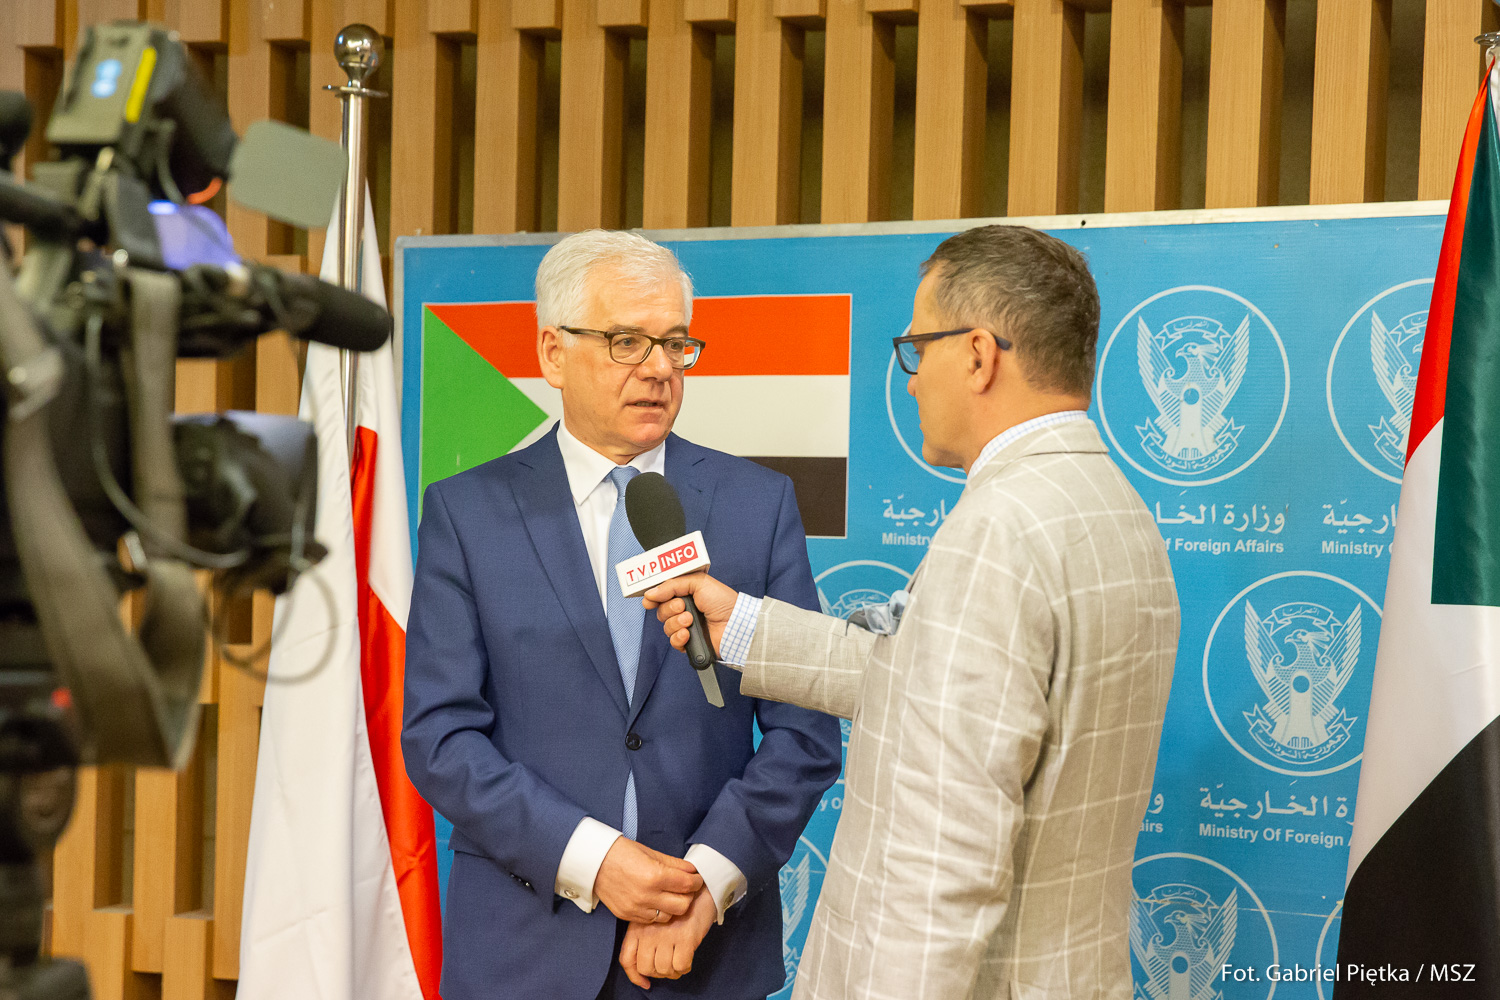 WI Daily News – Polish MFA supports political transformation and reform process in Sudan.